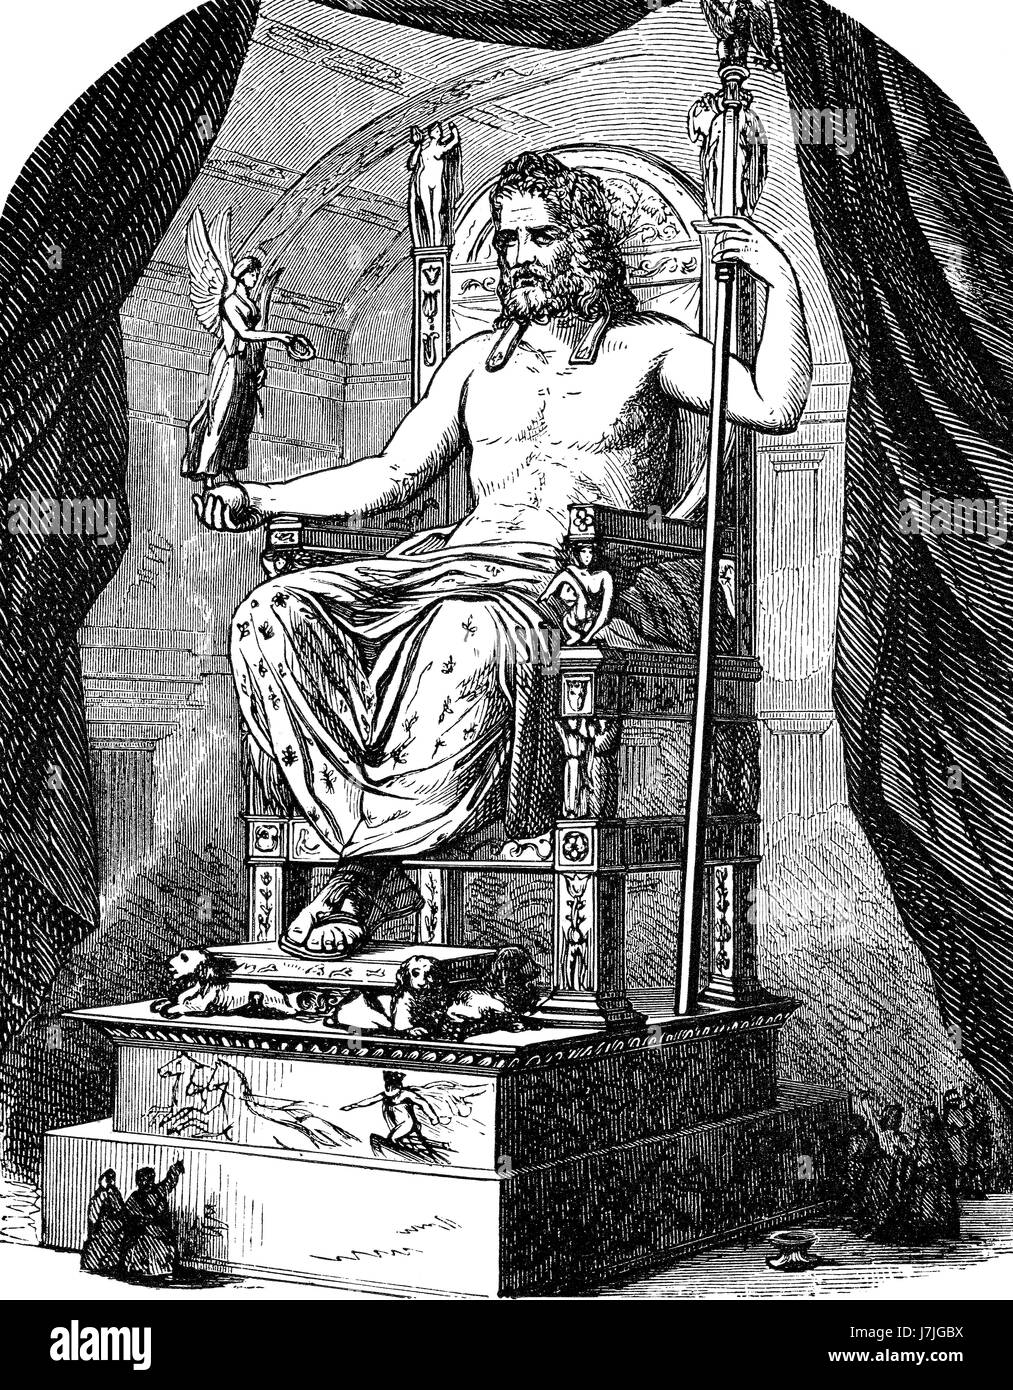 Zeus, king of the gods, ancient Greek religion - Stock Image